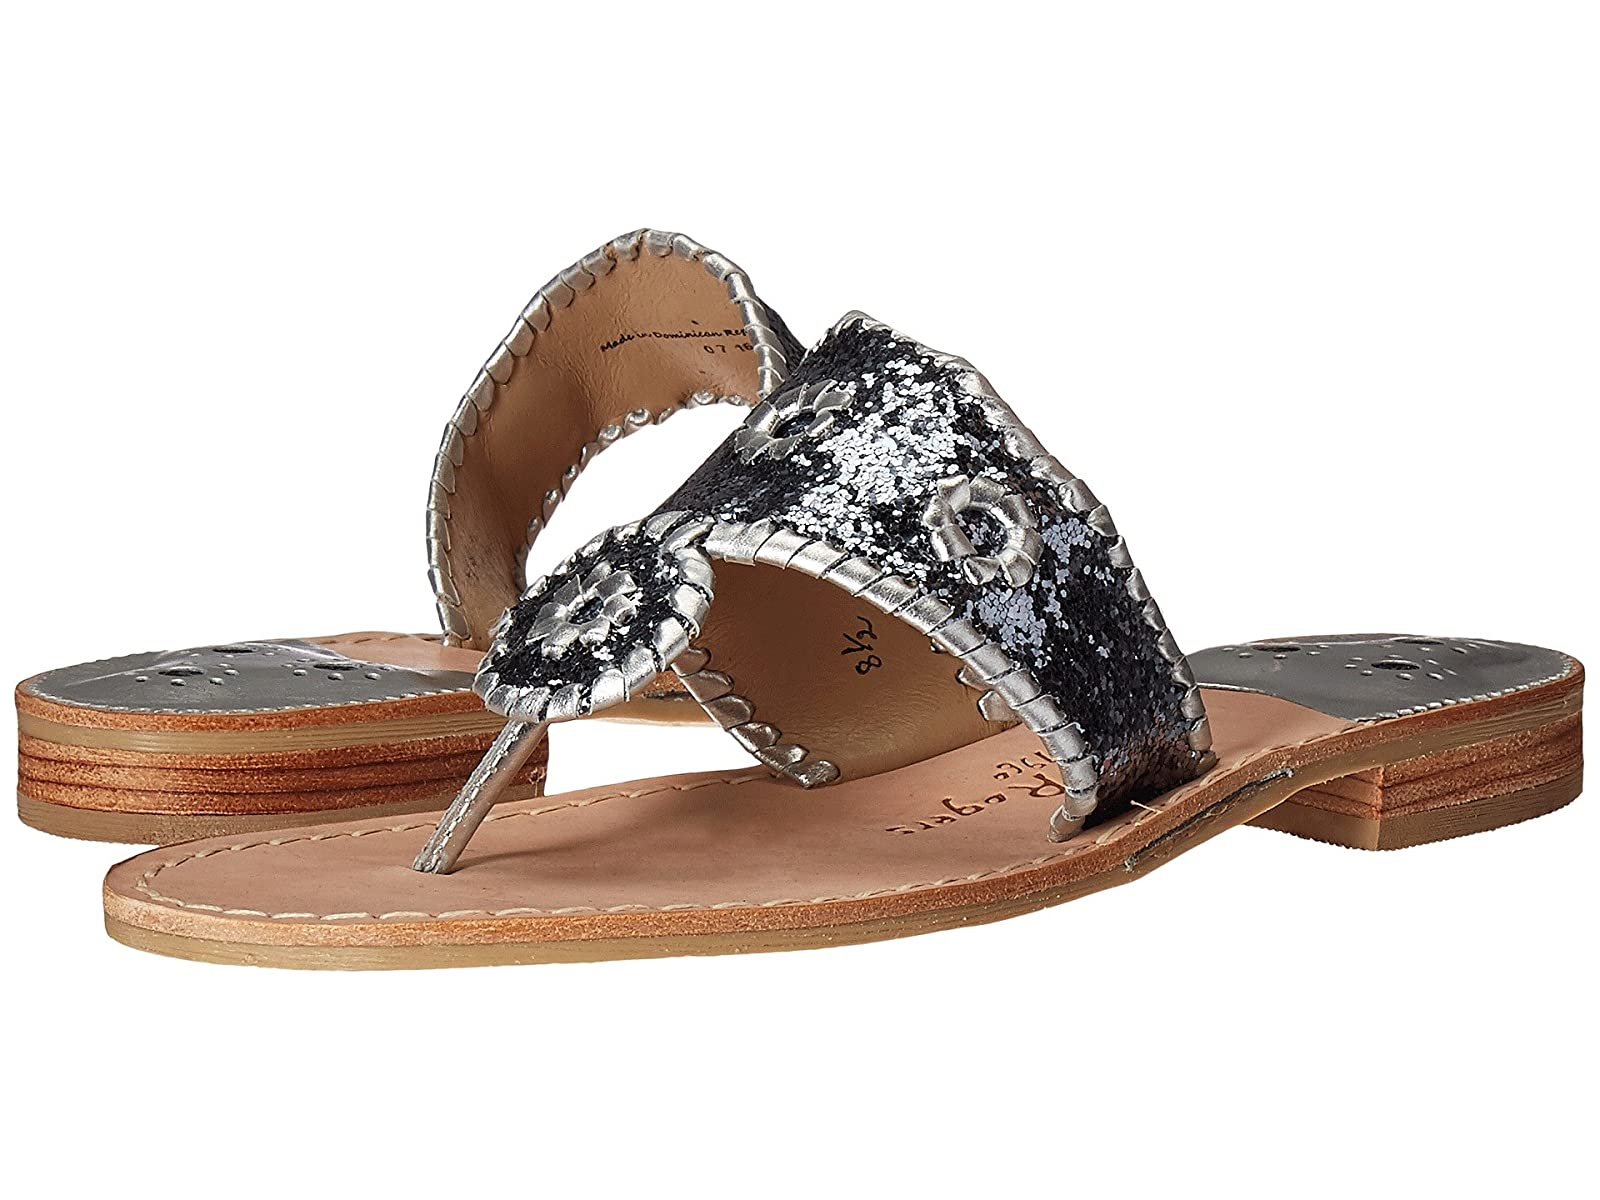 Jack Rogers CleoCheap and distinctive eye-catching shoes